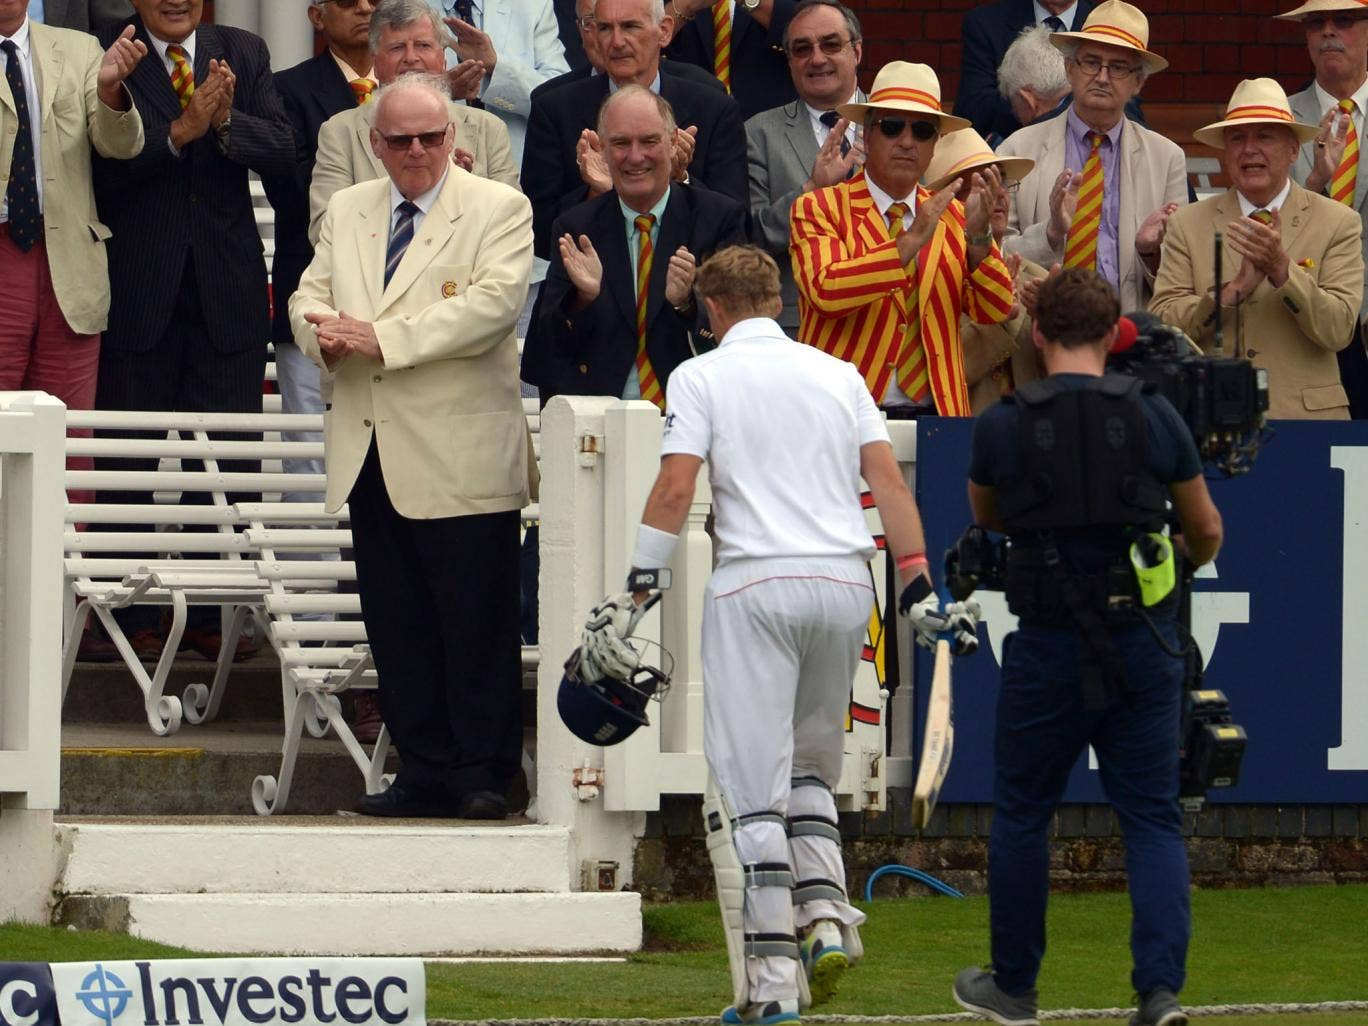 Lord's praise: The members show their appreciation for Joe Root